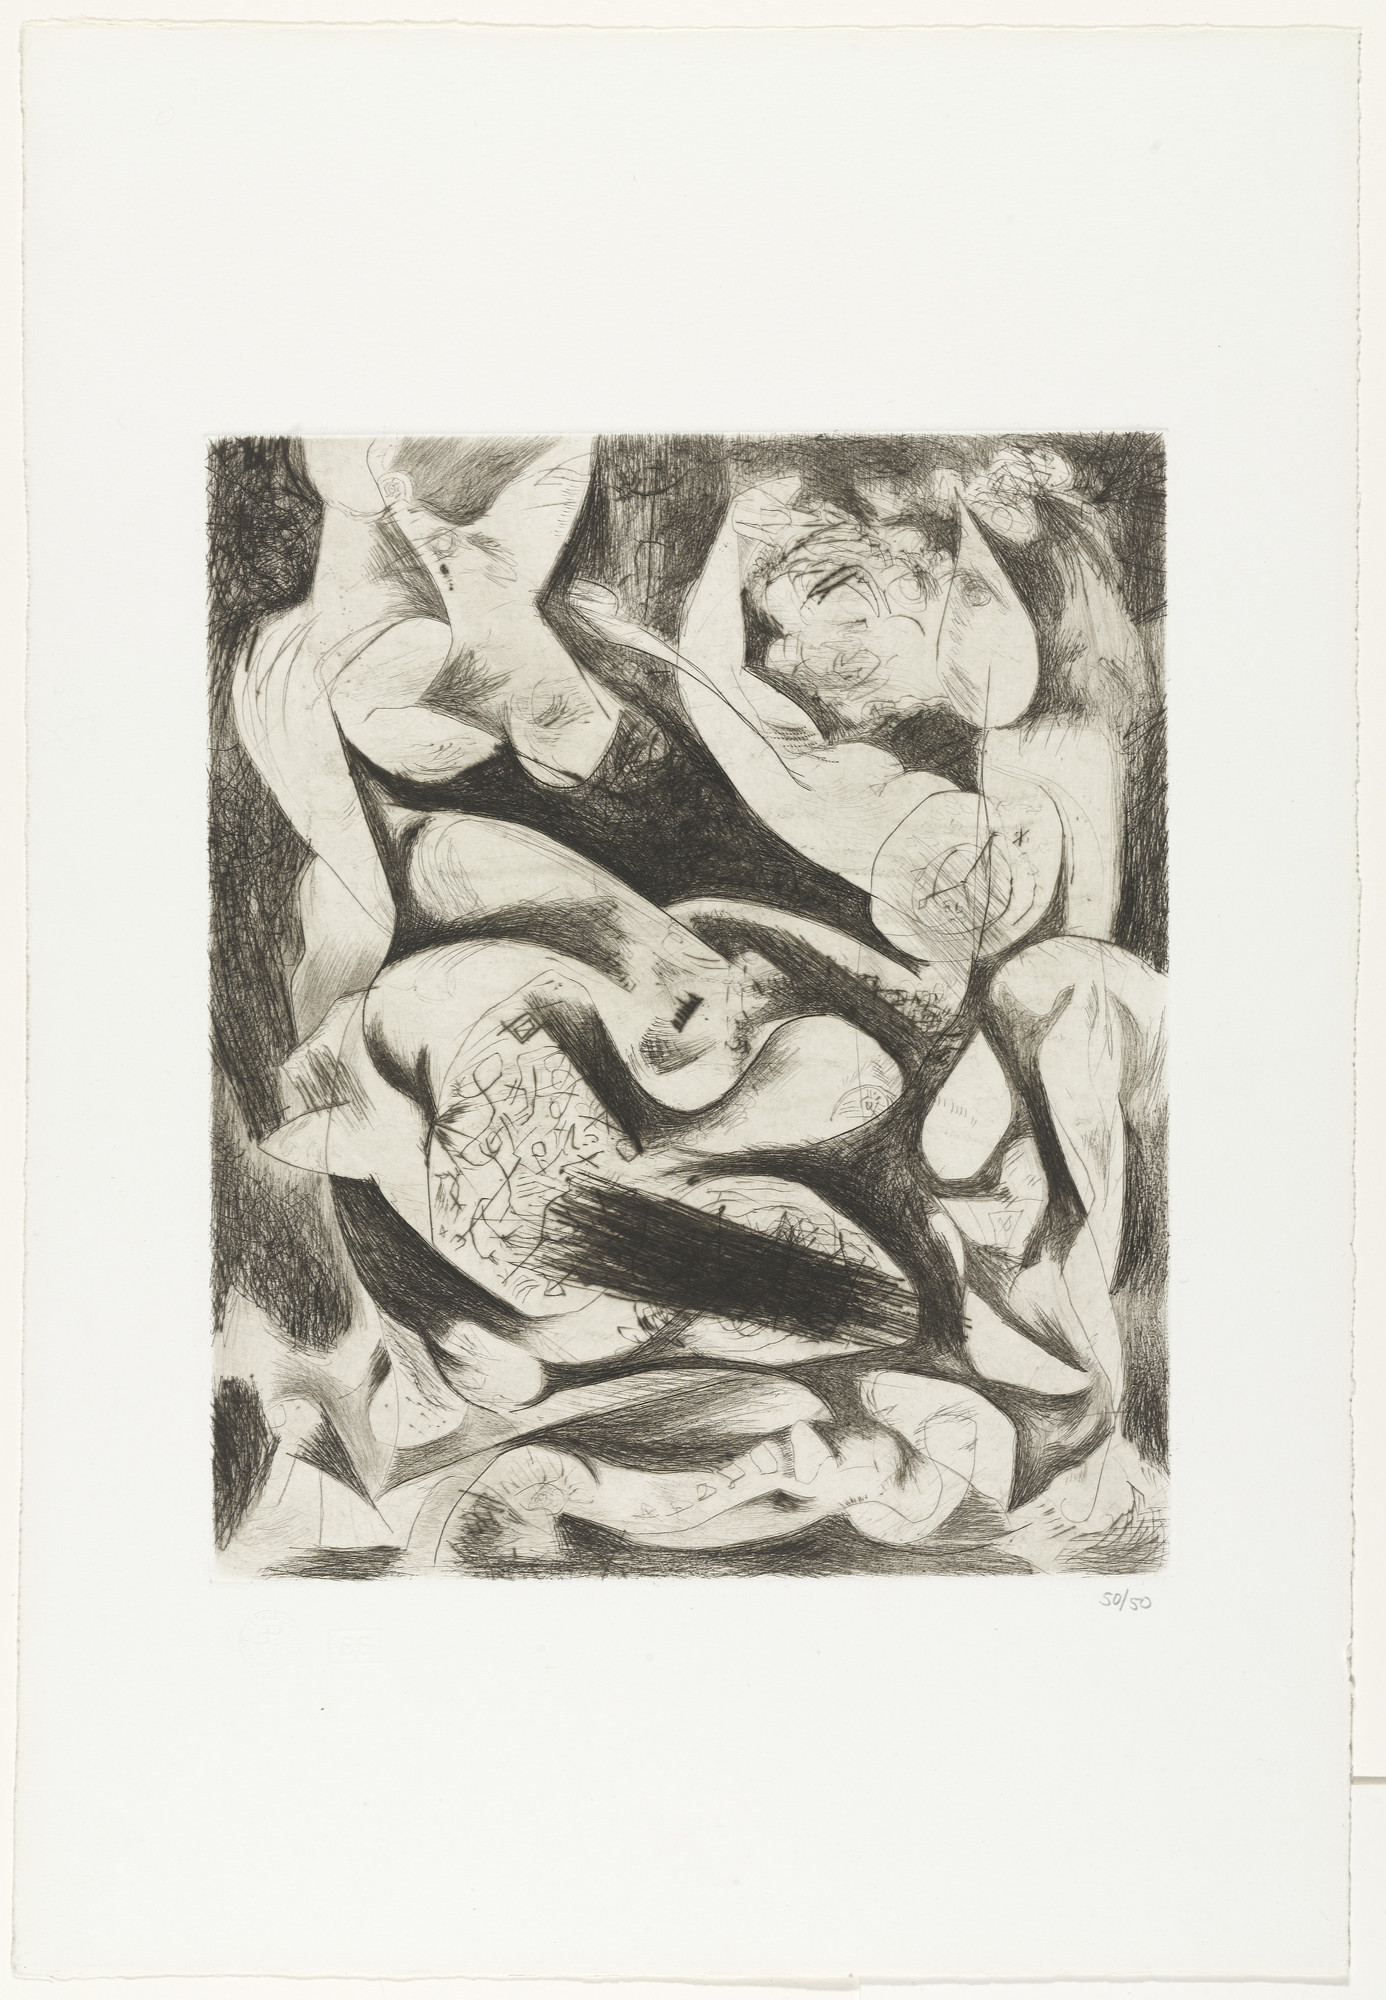 Jackson Pollock. Untitled (2). c. 1944, printed in 1967